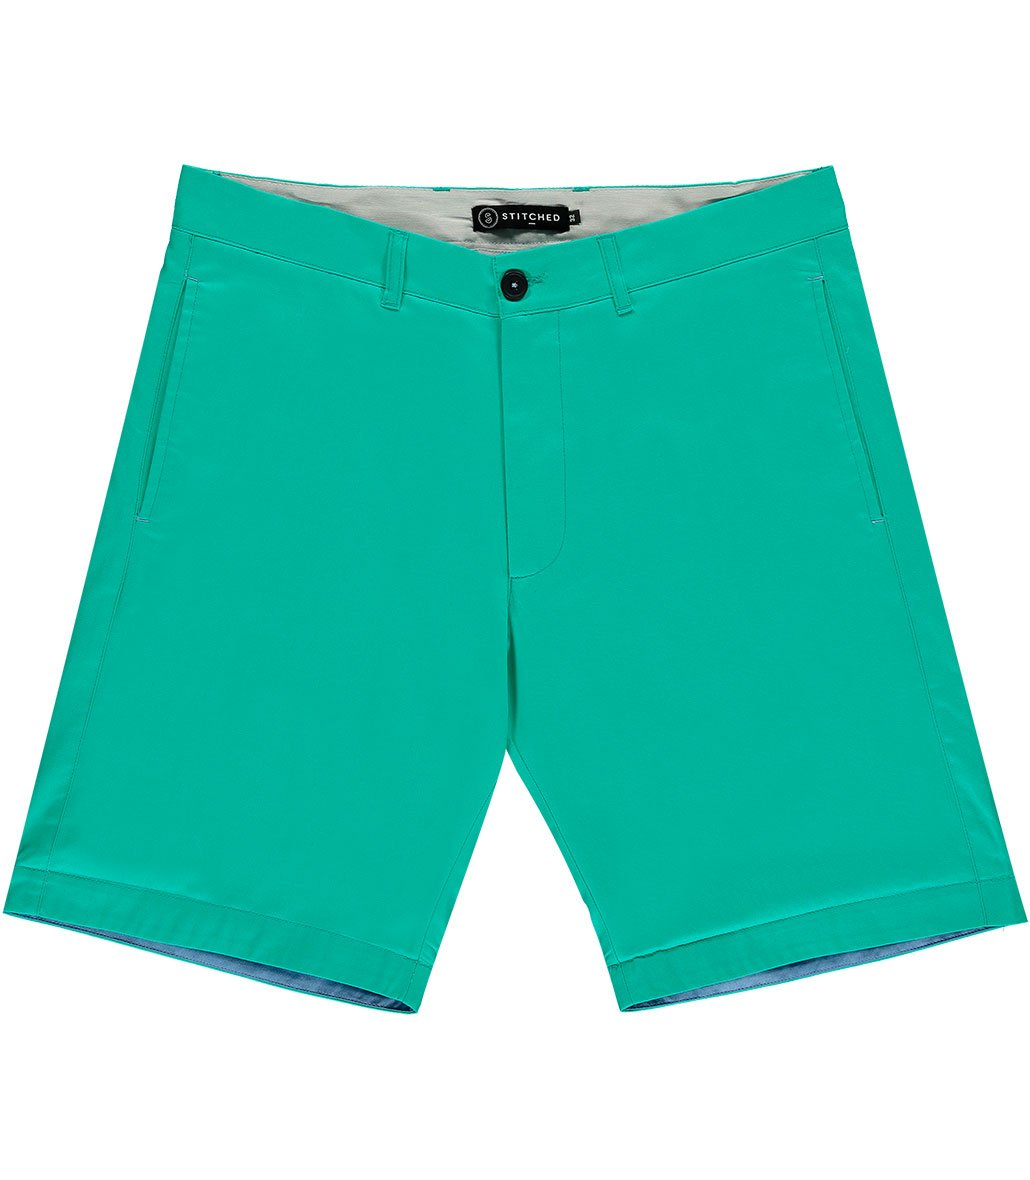 The Basil's Aqua Cotton Shorts